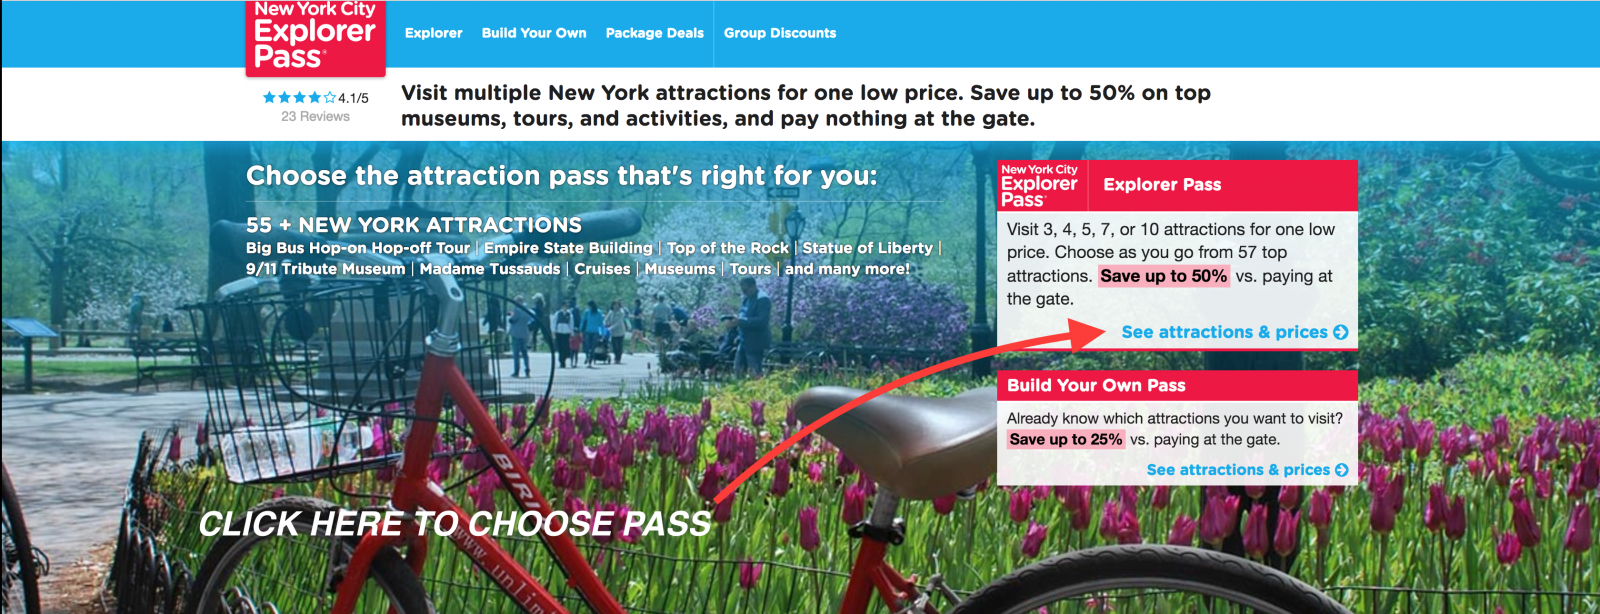 Click here to buy NYC Explorer Pass